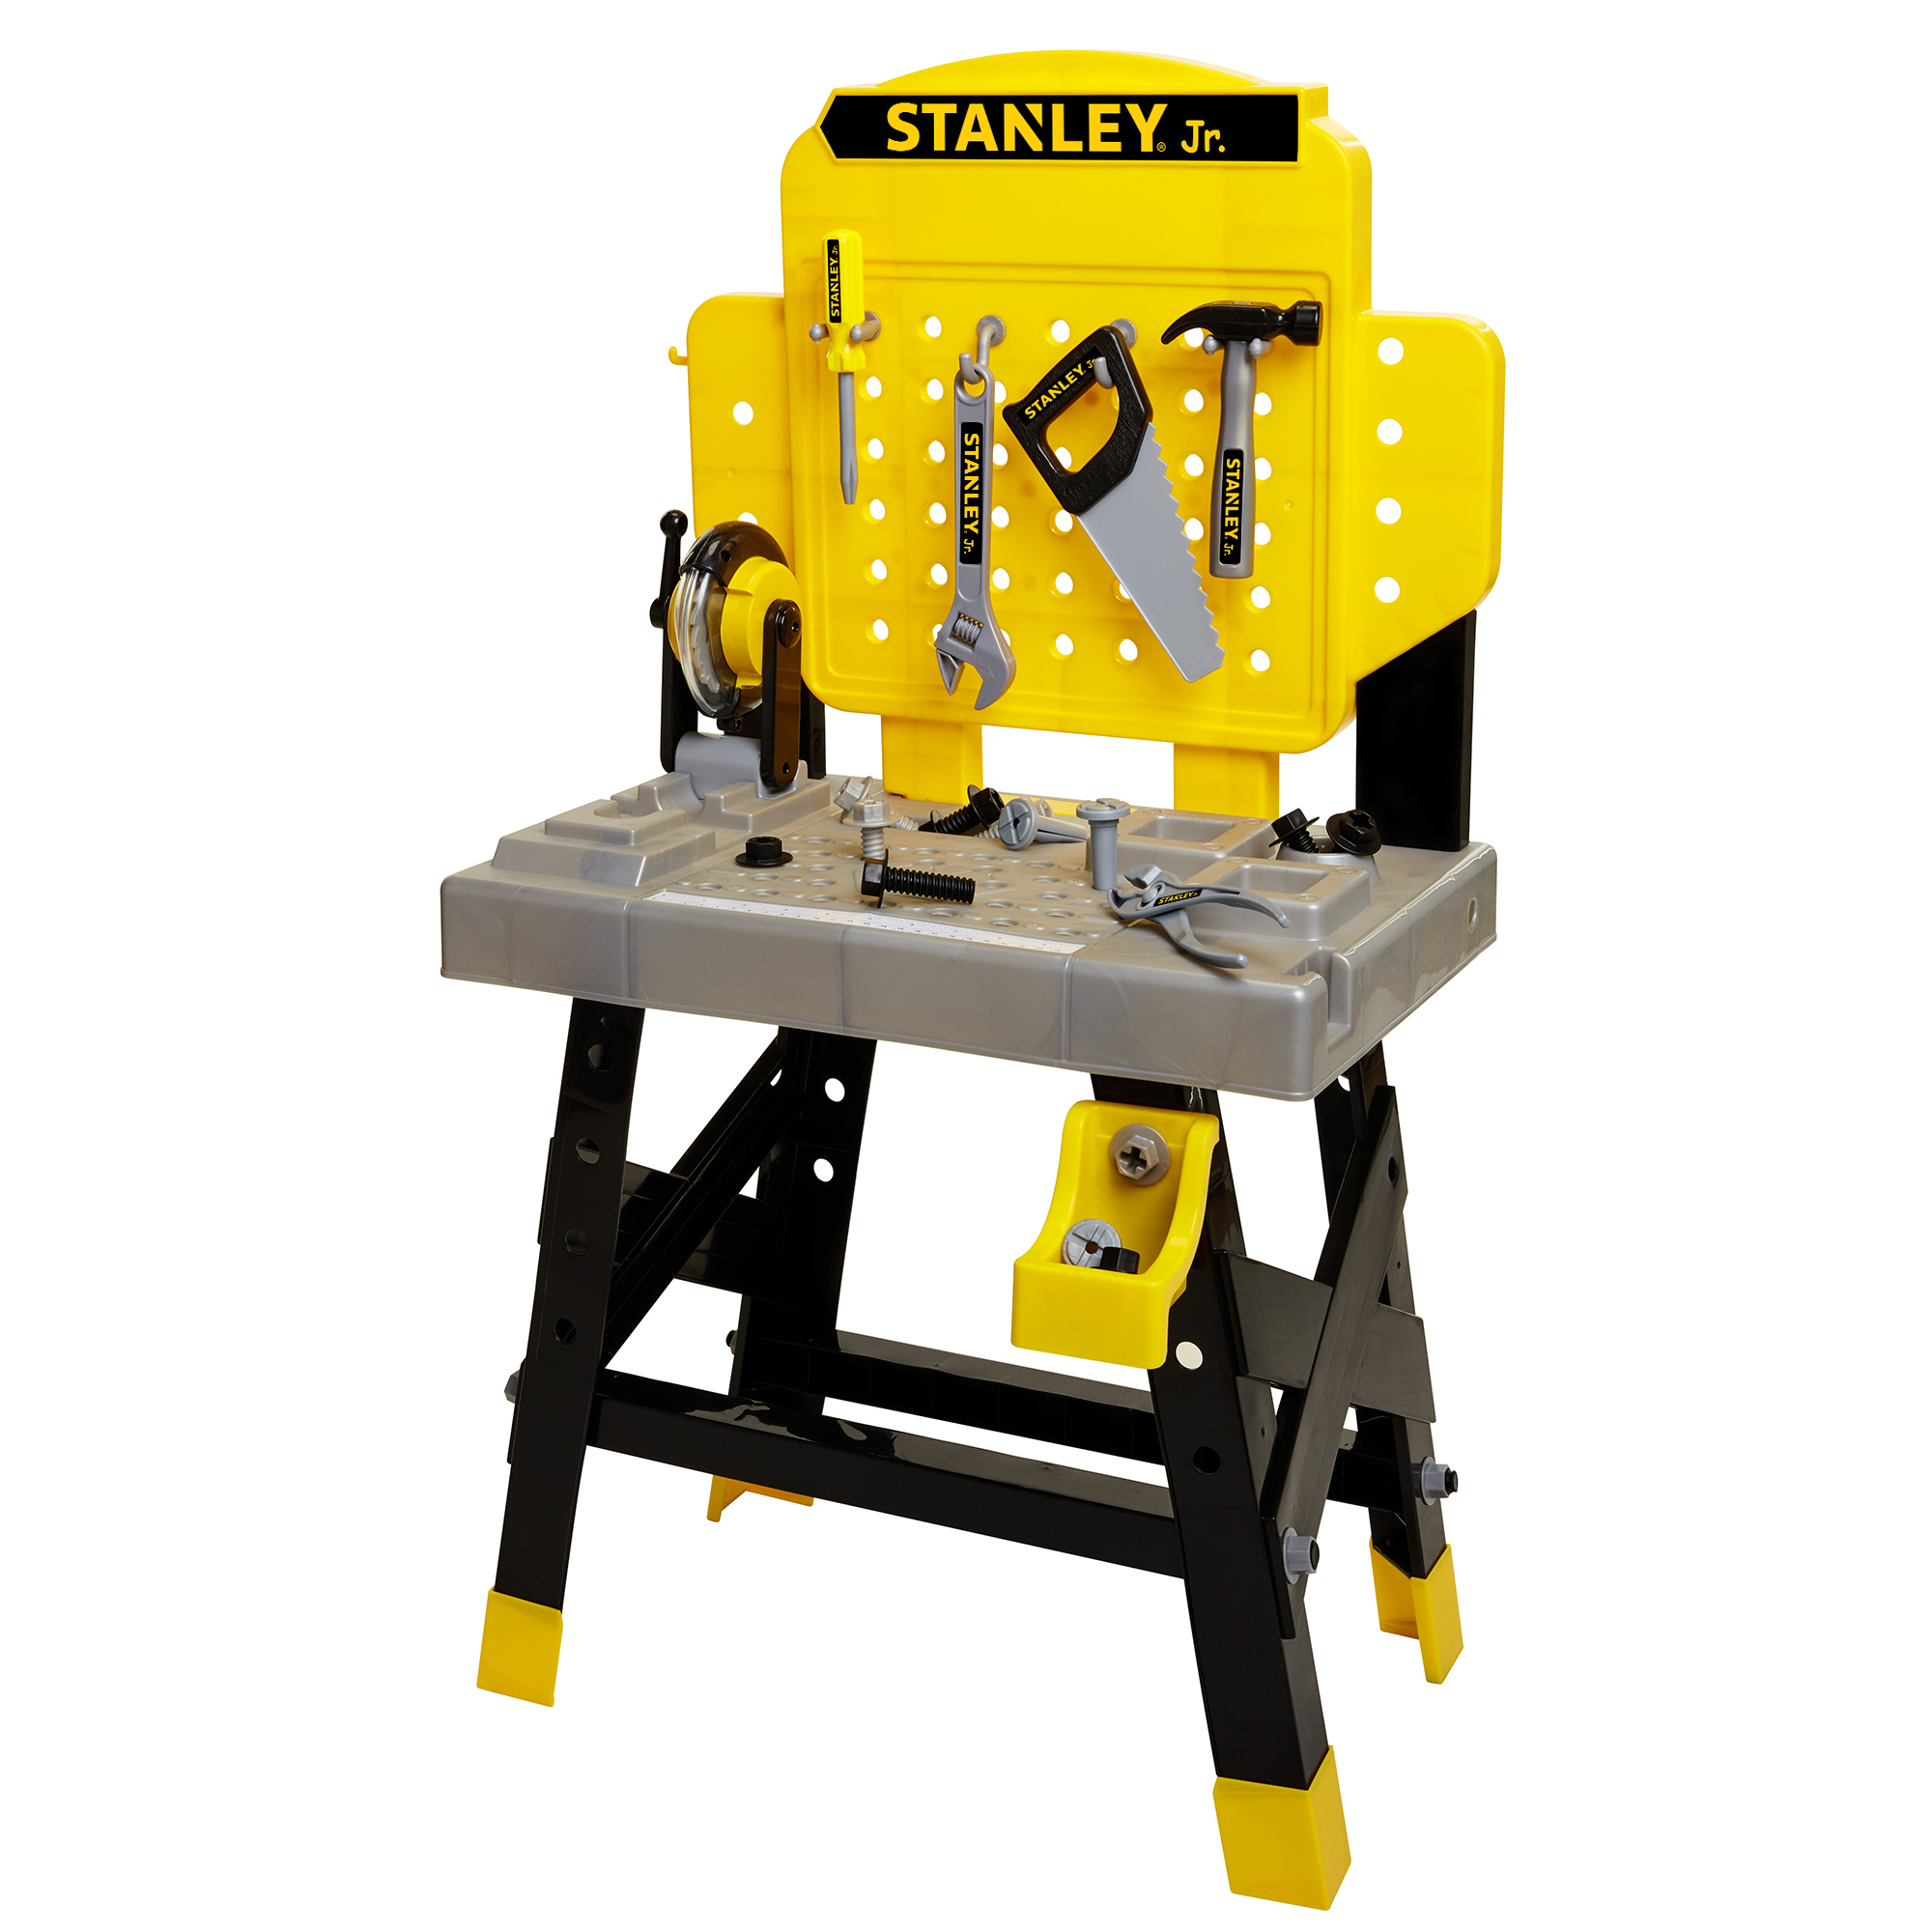 STANLEY™ Jr Mega Power N' Play Workbench